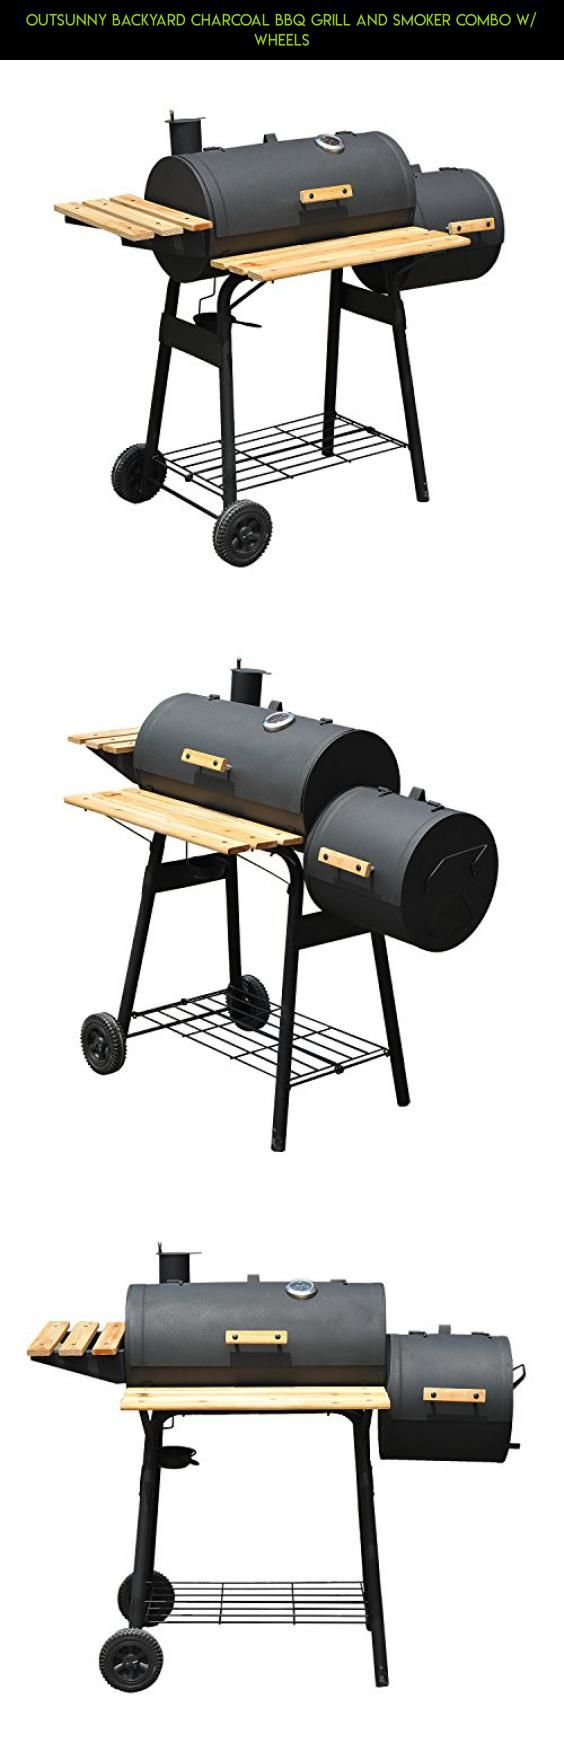 best 25 charcoal grill ideas on pinterest charcoal grill smoker